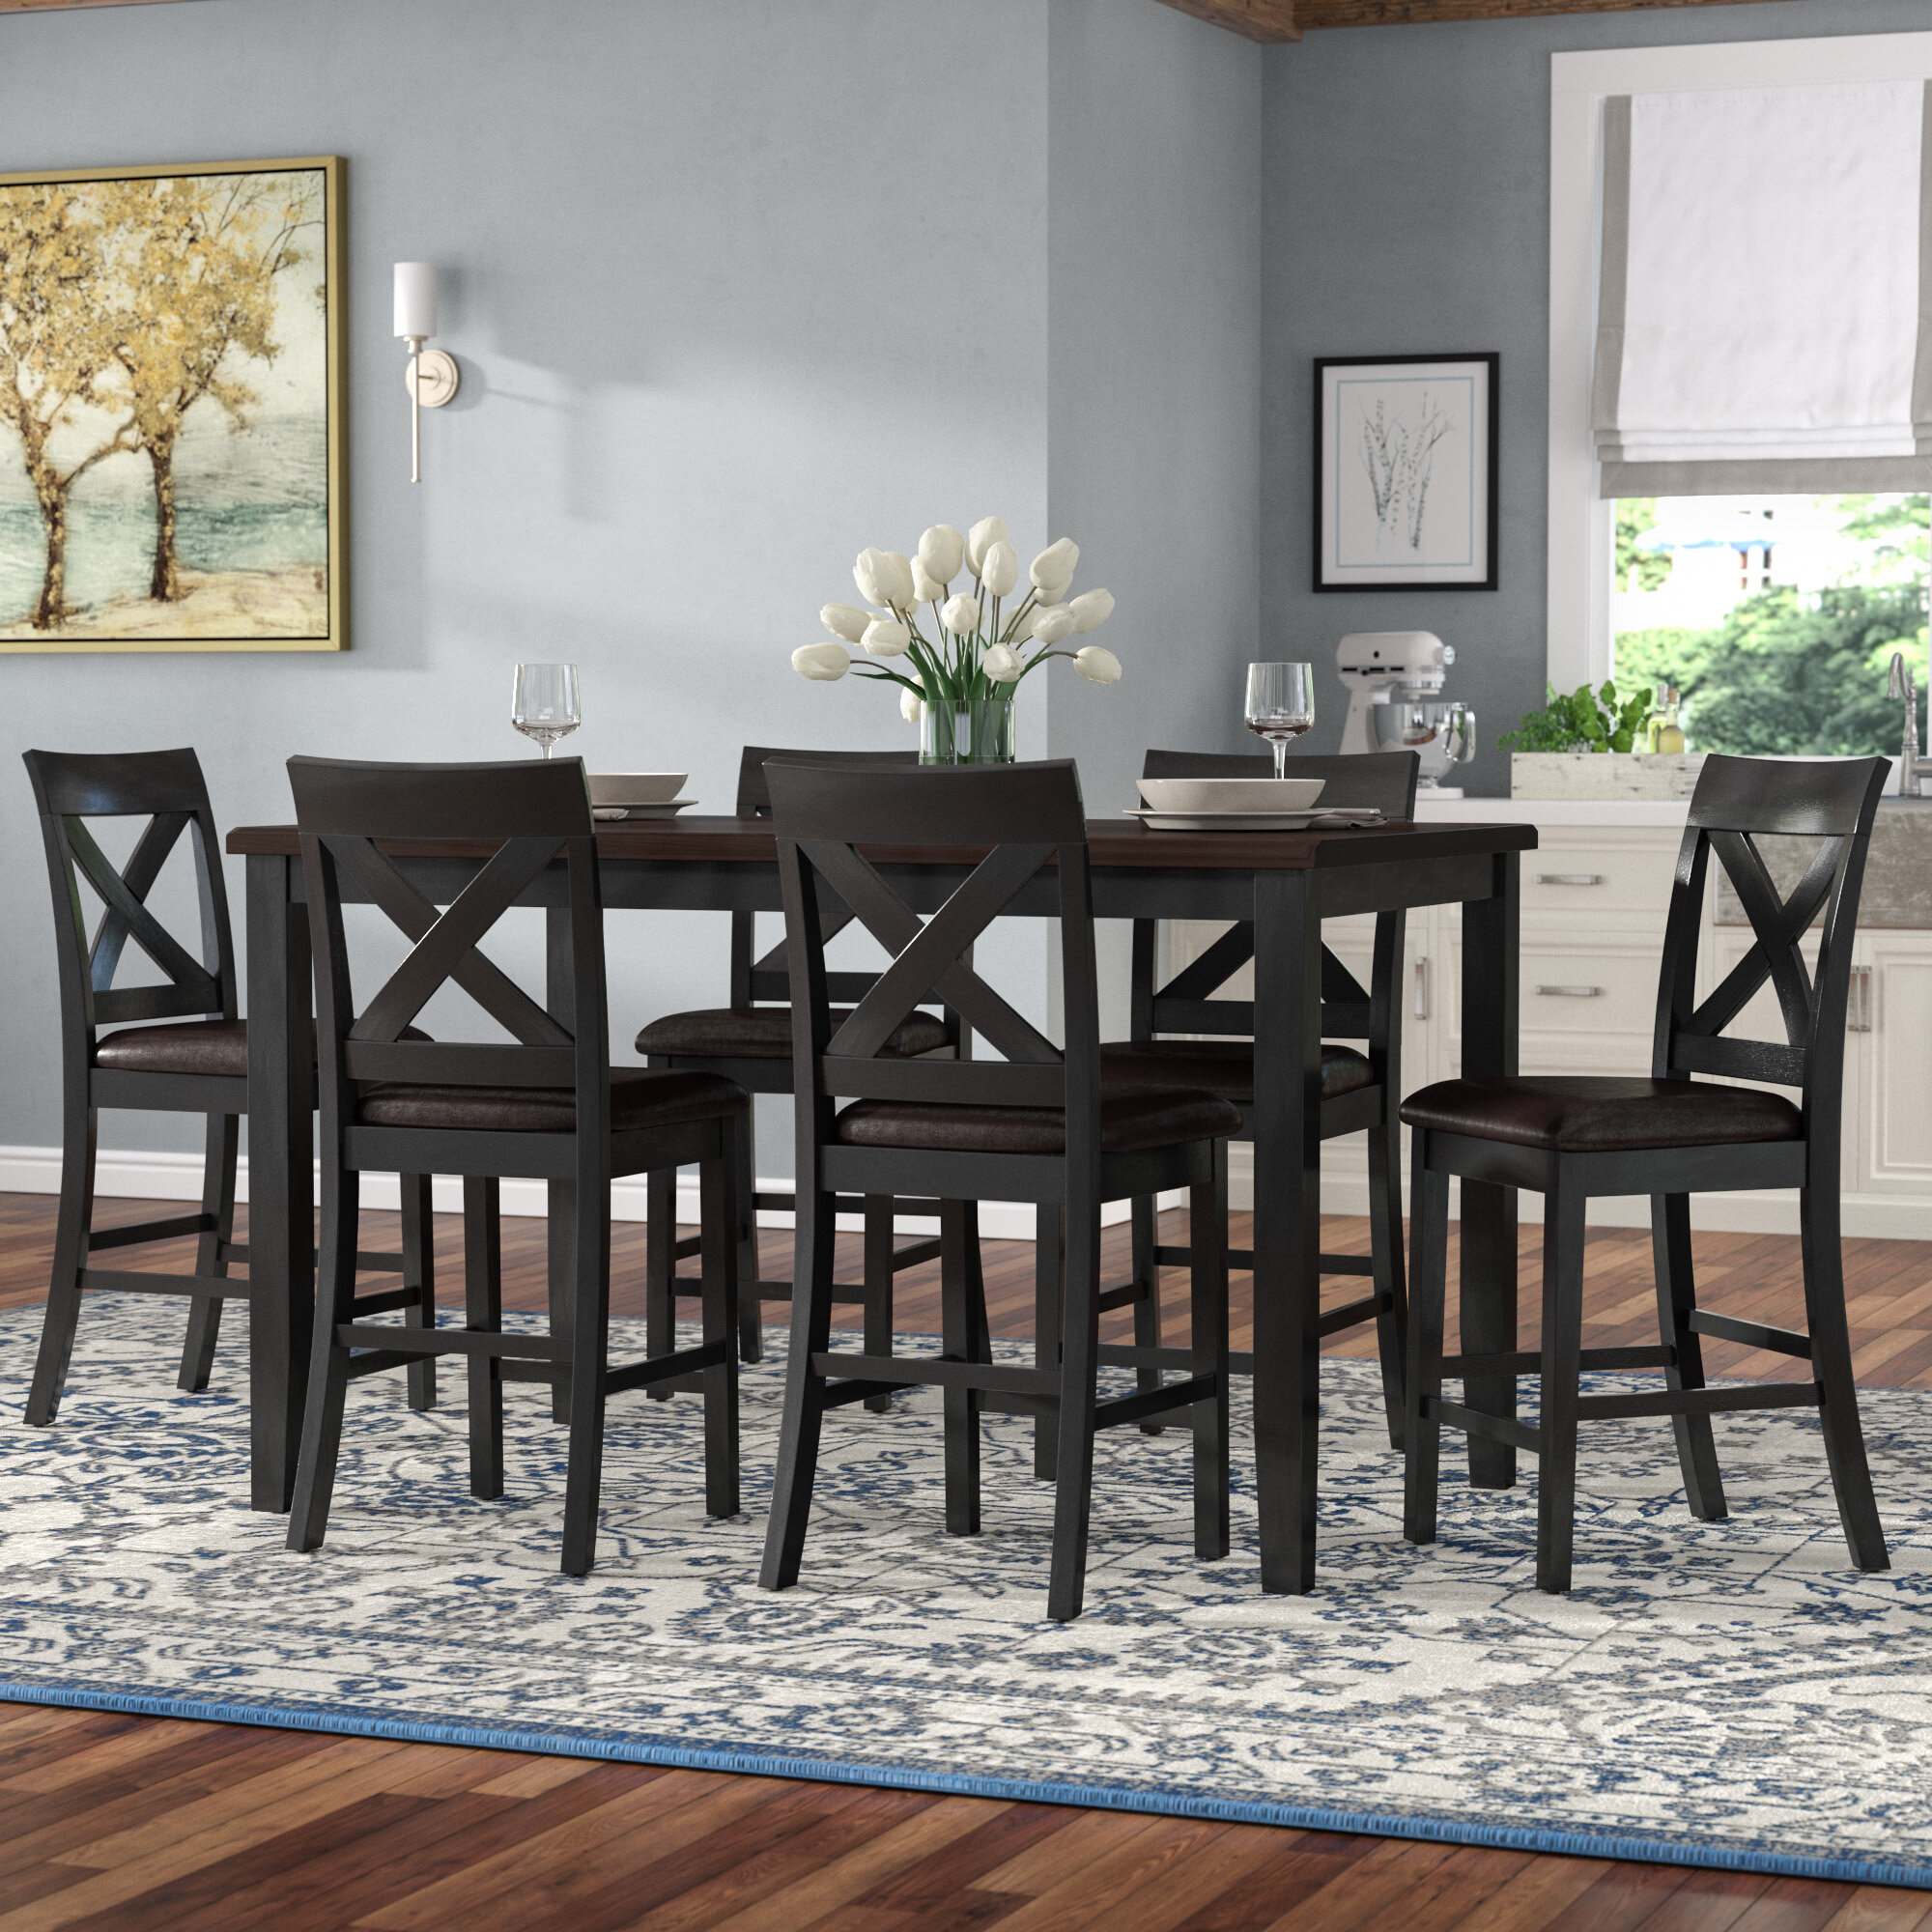 Darby Home Co Nadine 7 Piece Breakfast Nook Dining Set U0026 Reviews | Wayfair